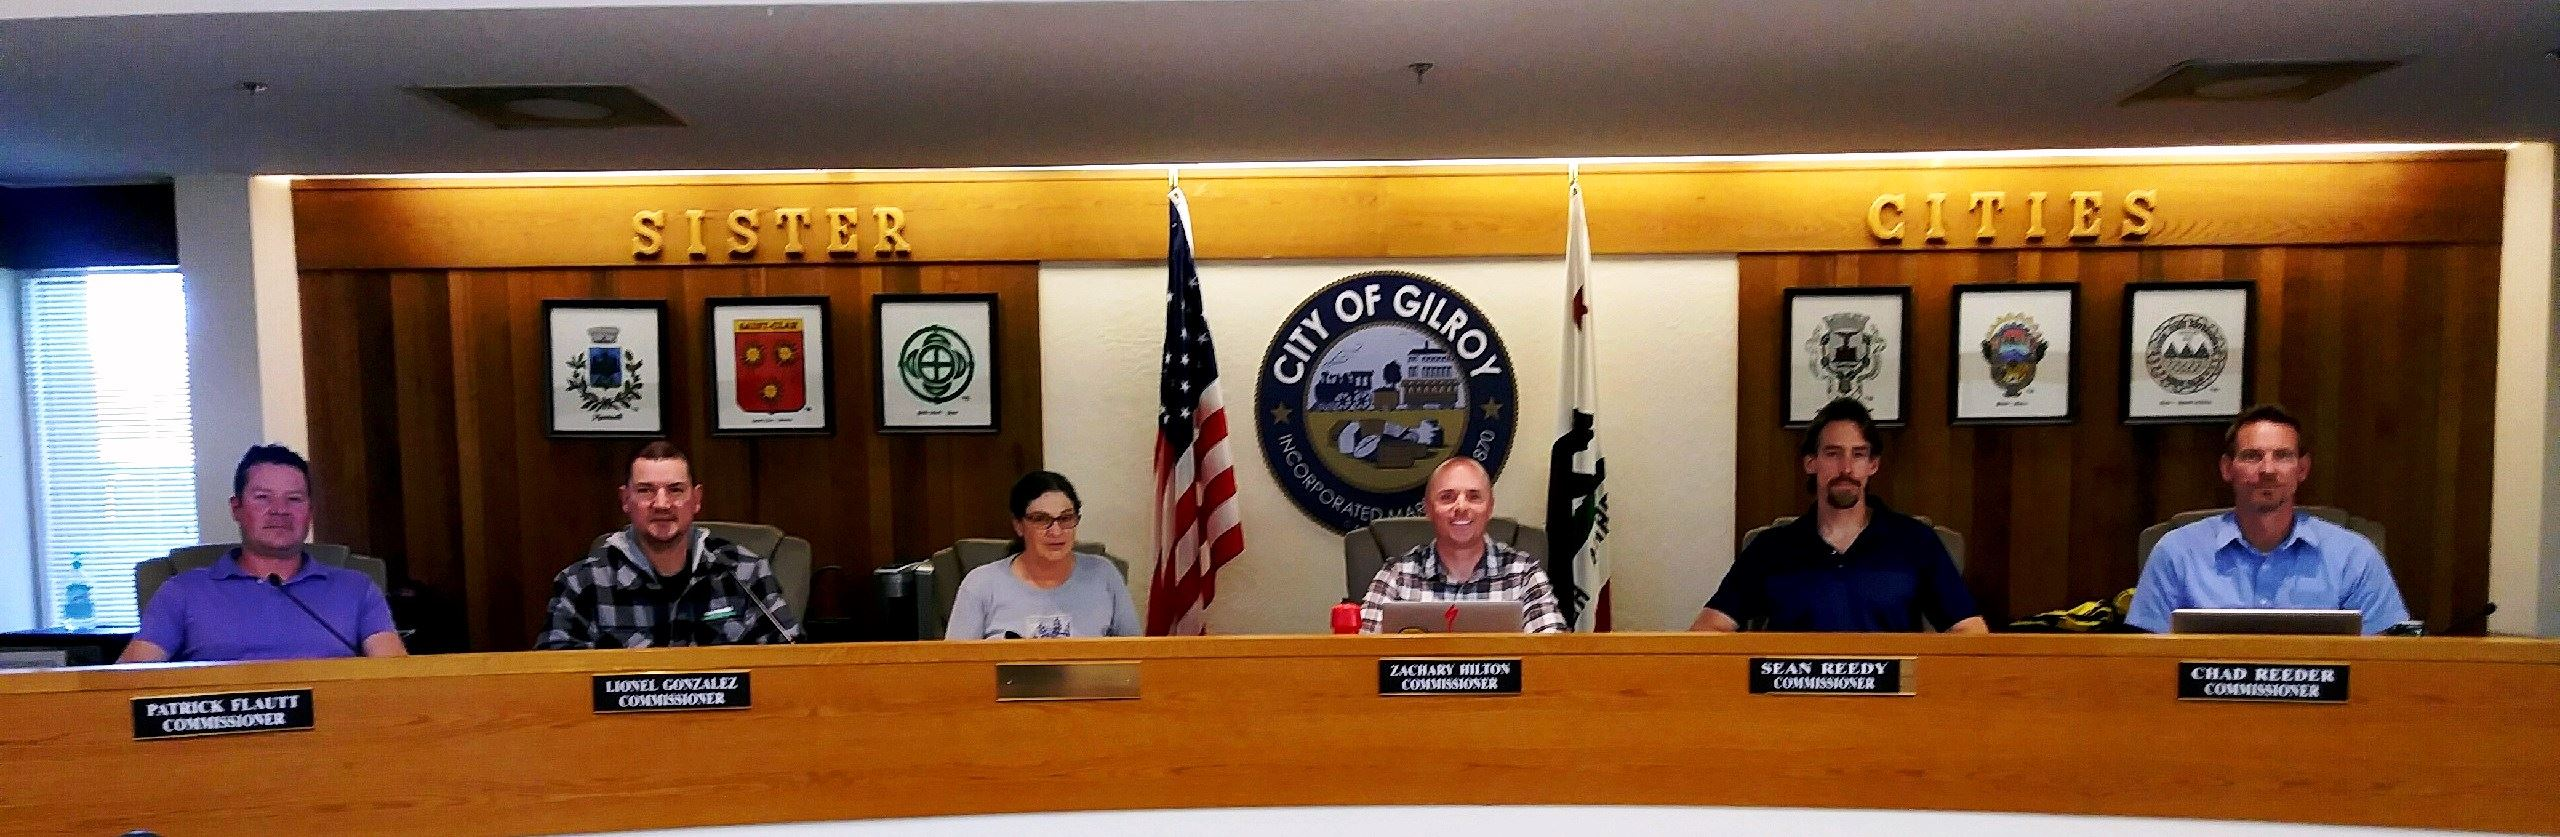 Bicycle Pedestrian Commission | Gilroy, CA - Official Website